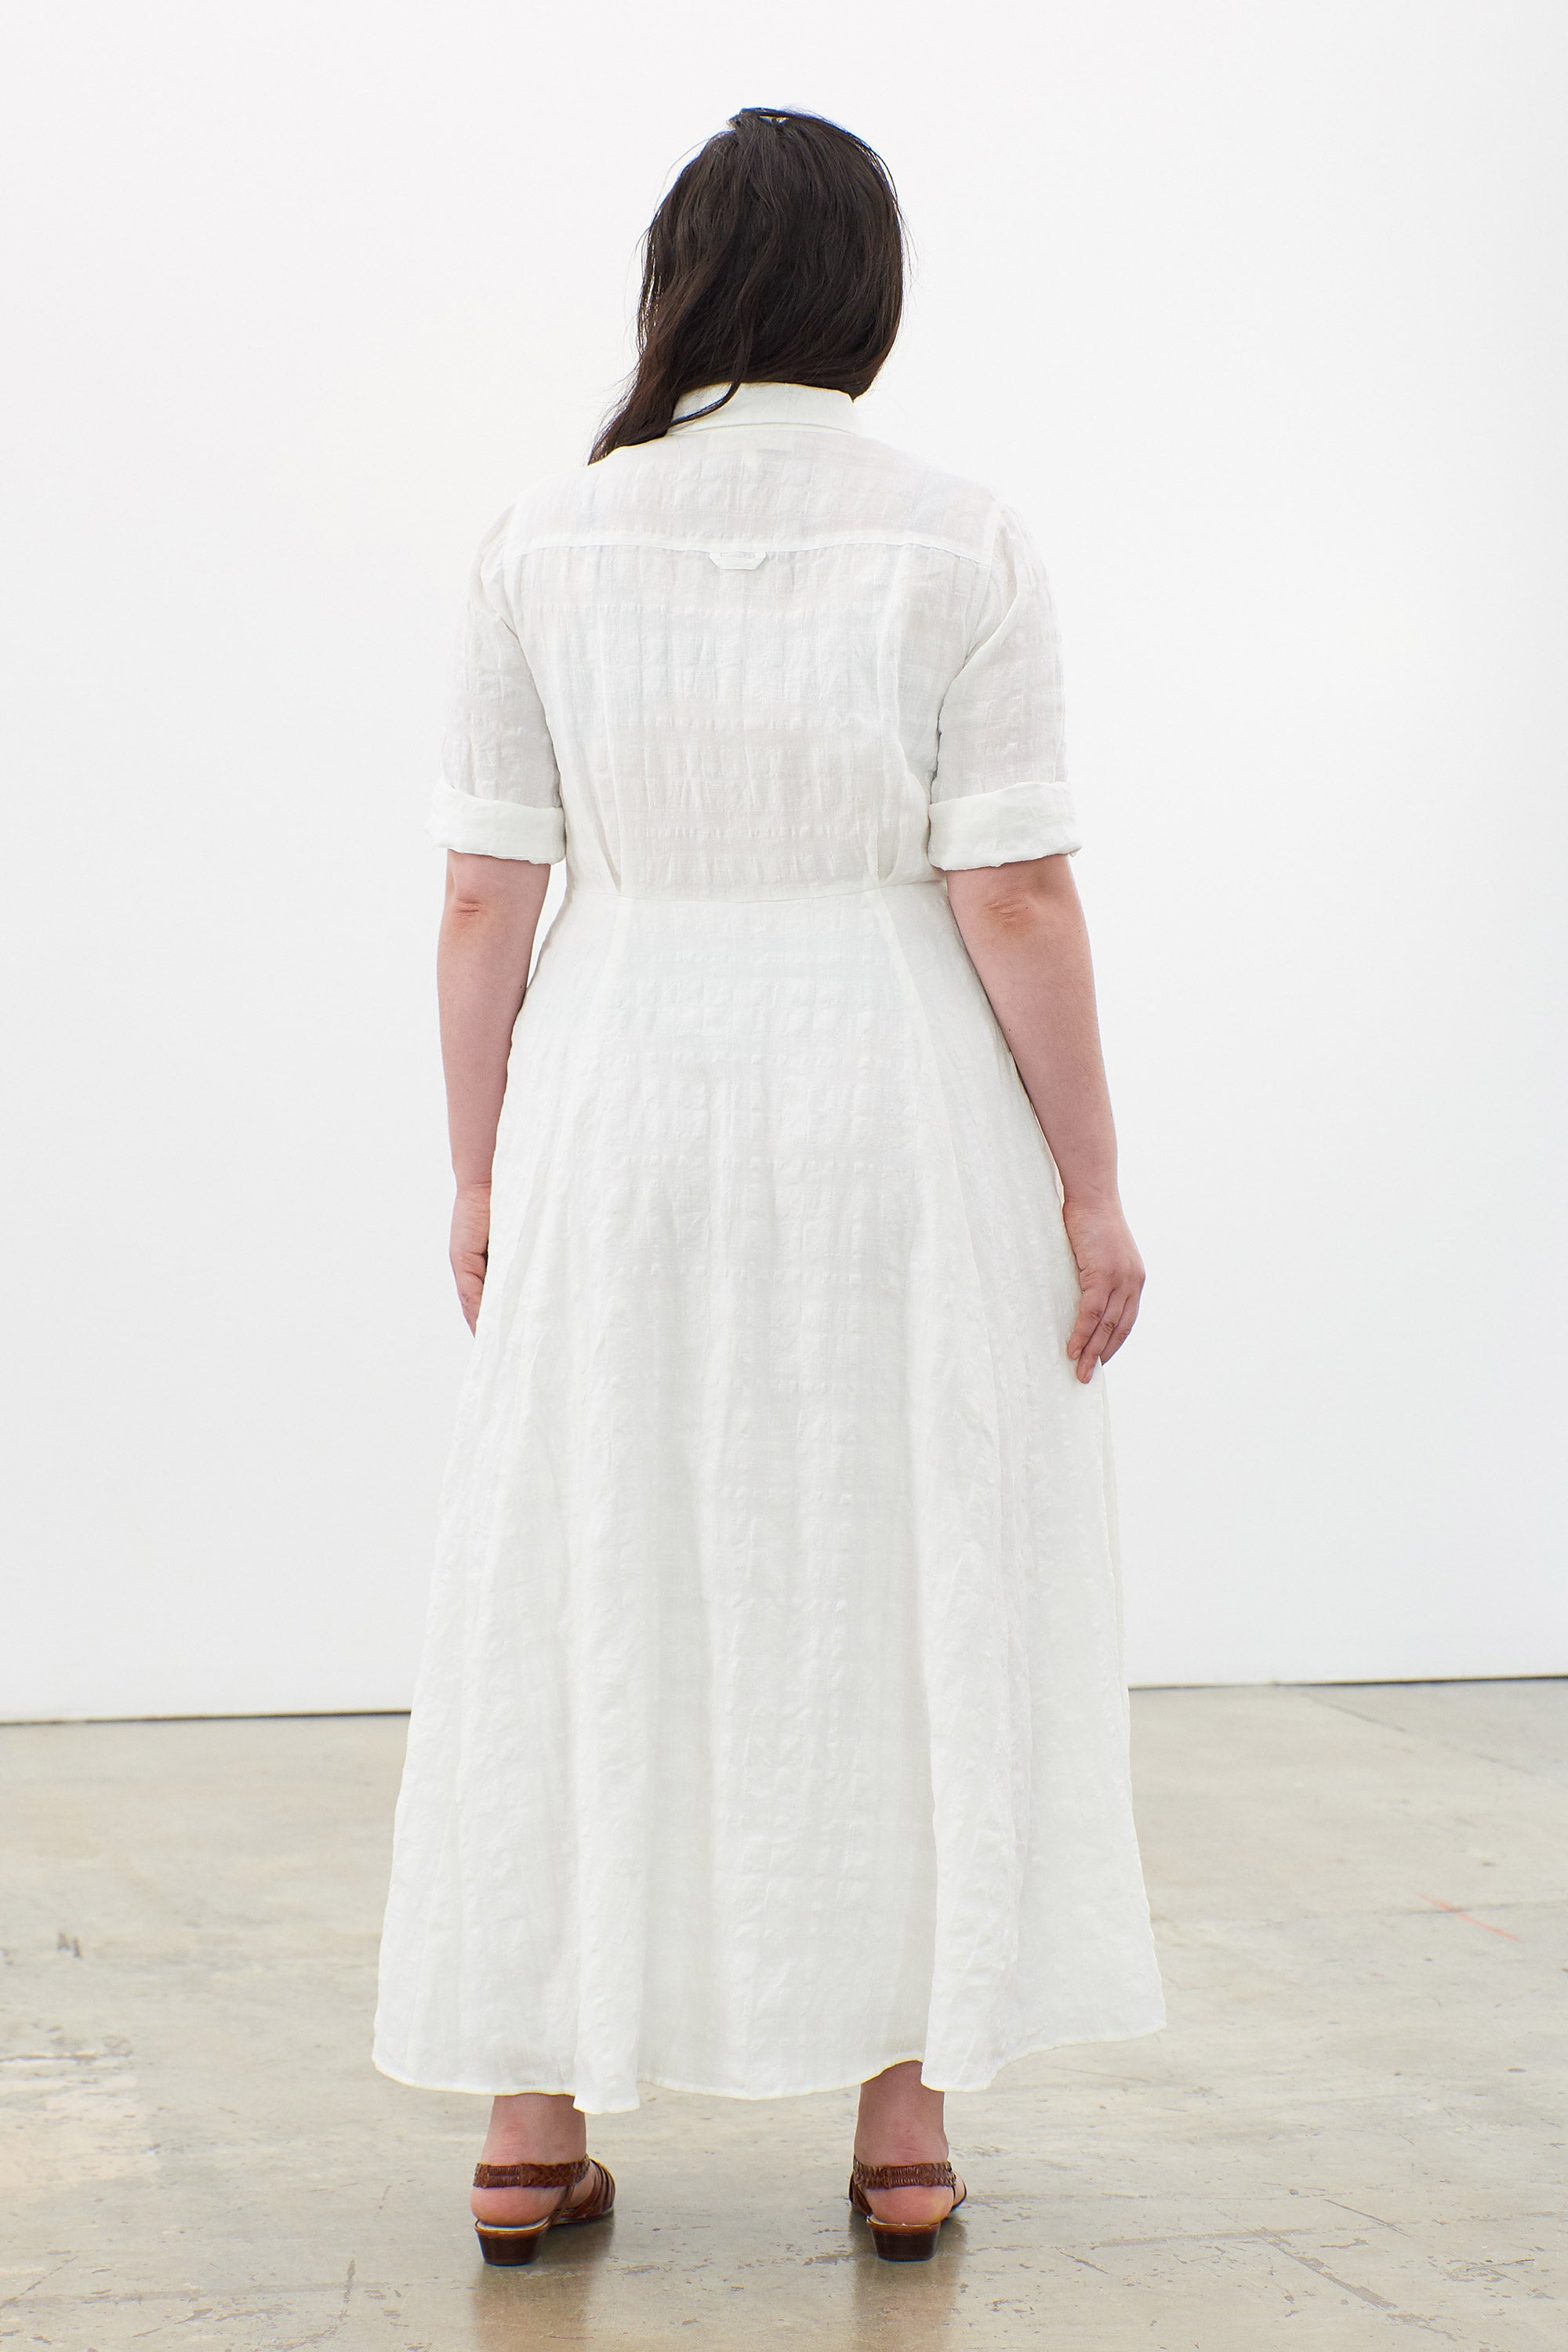 Mara Hoffman Extended White Lorelei Dress in linen and cotton (back)